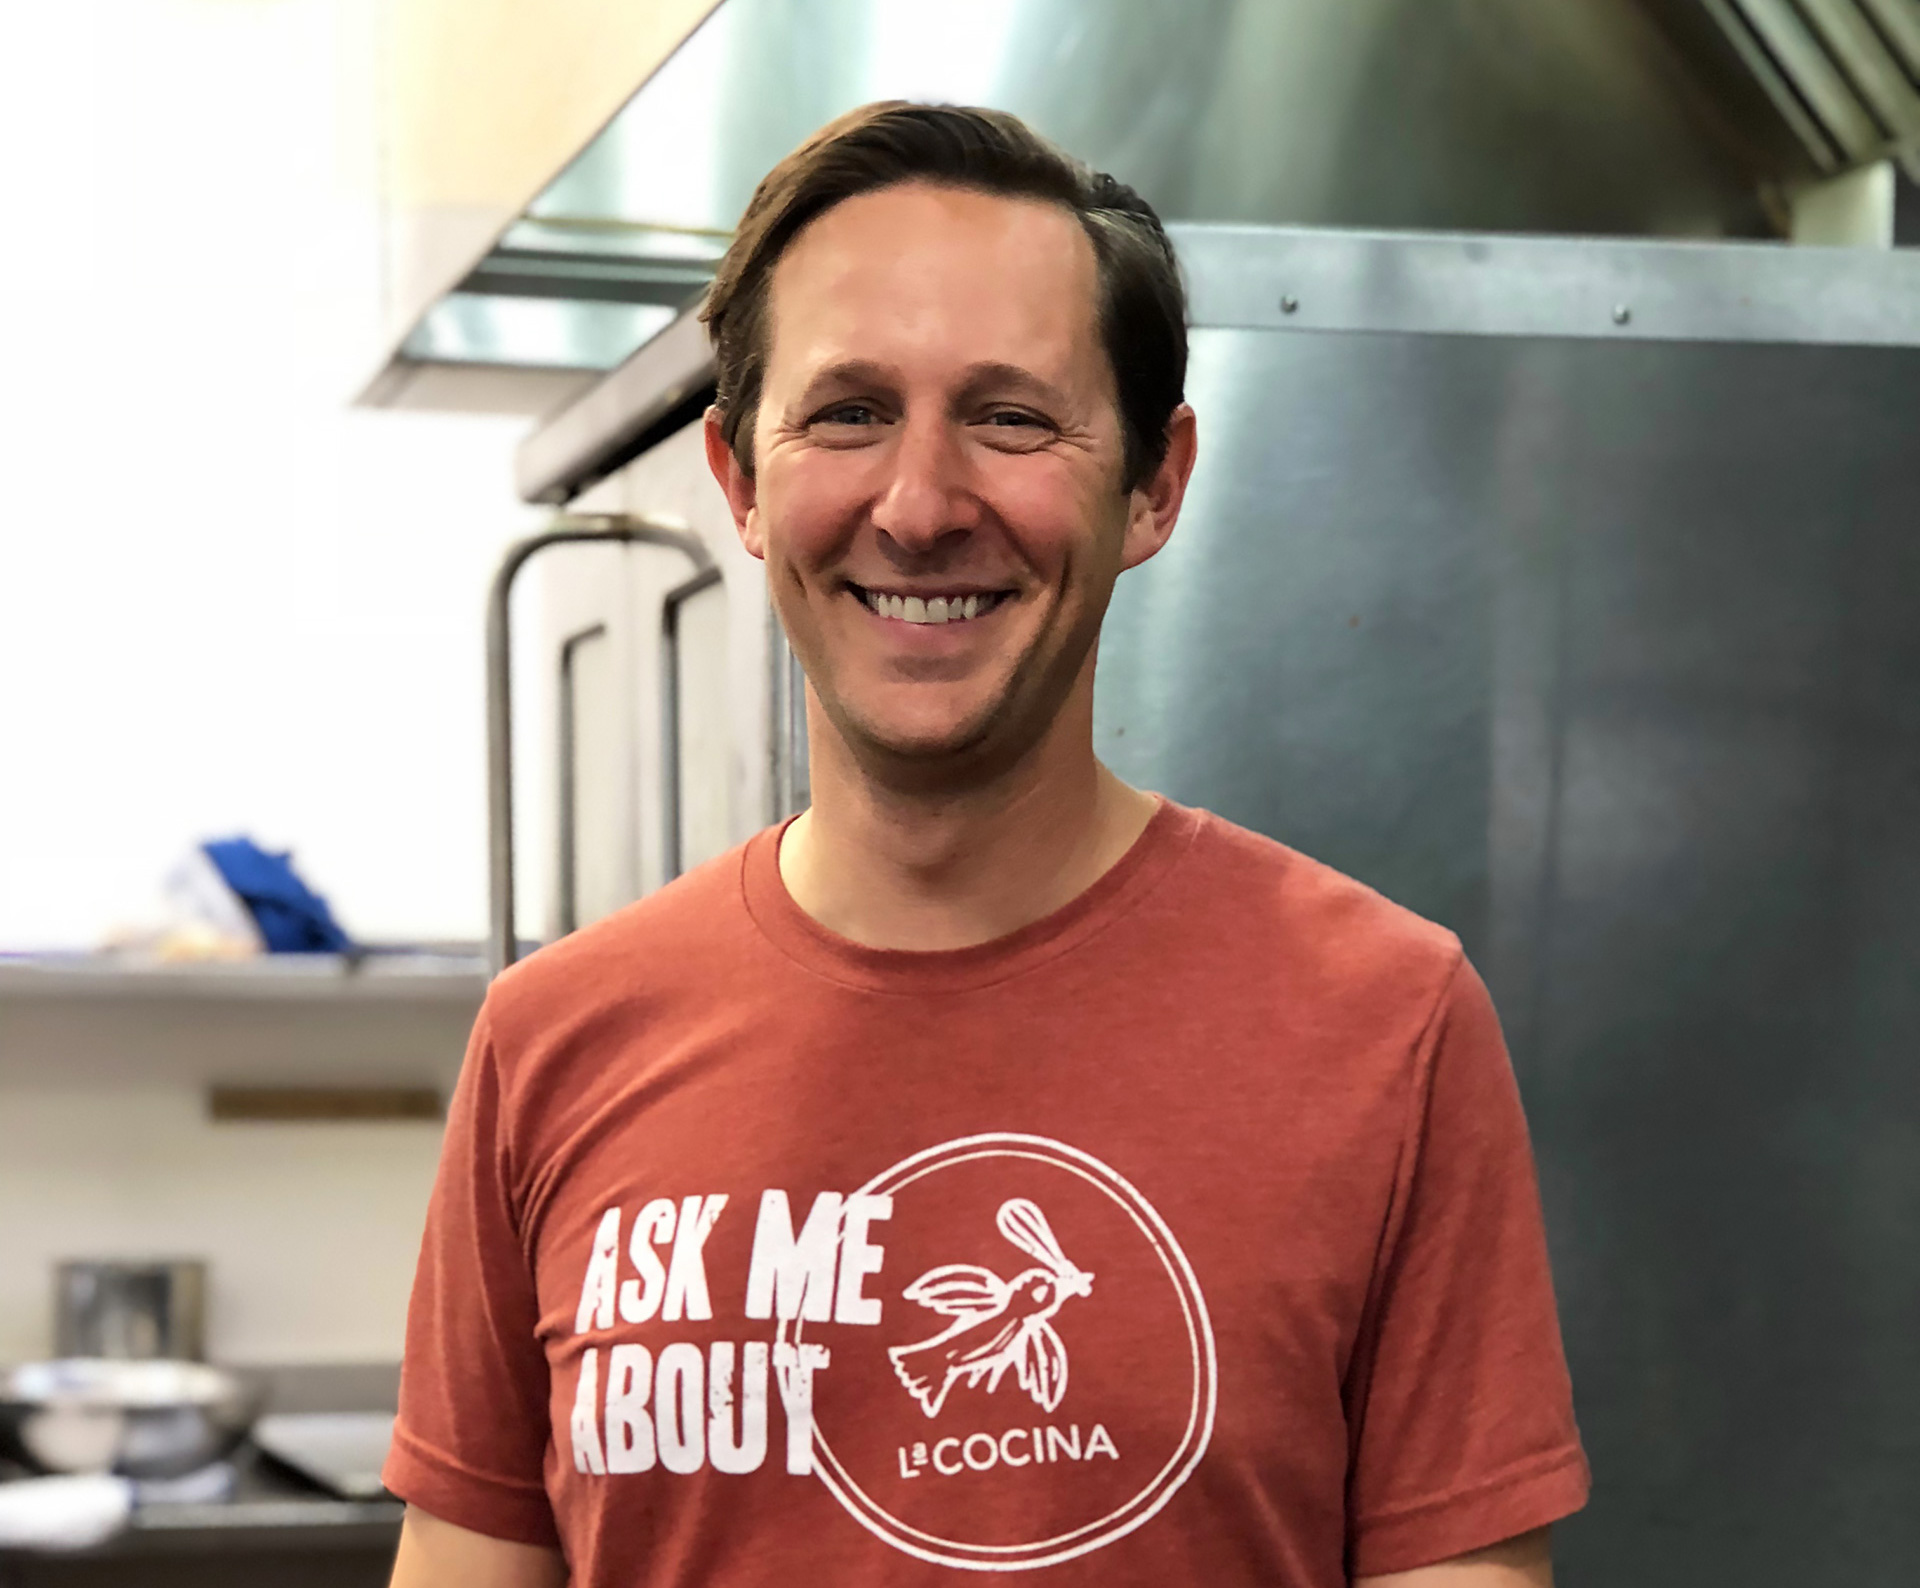 La Cocina's Executive Director Caleb Zigas in the kitchen at La Cocina headquarters.